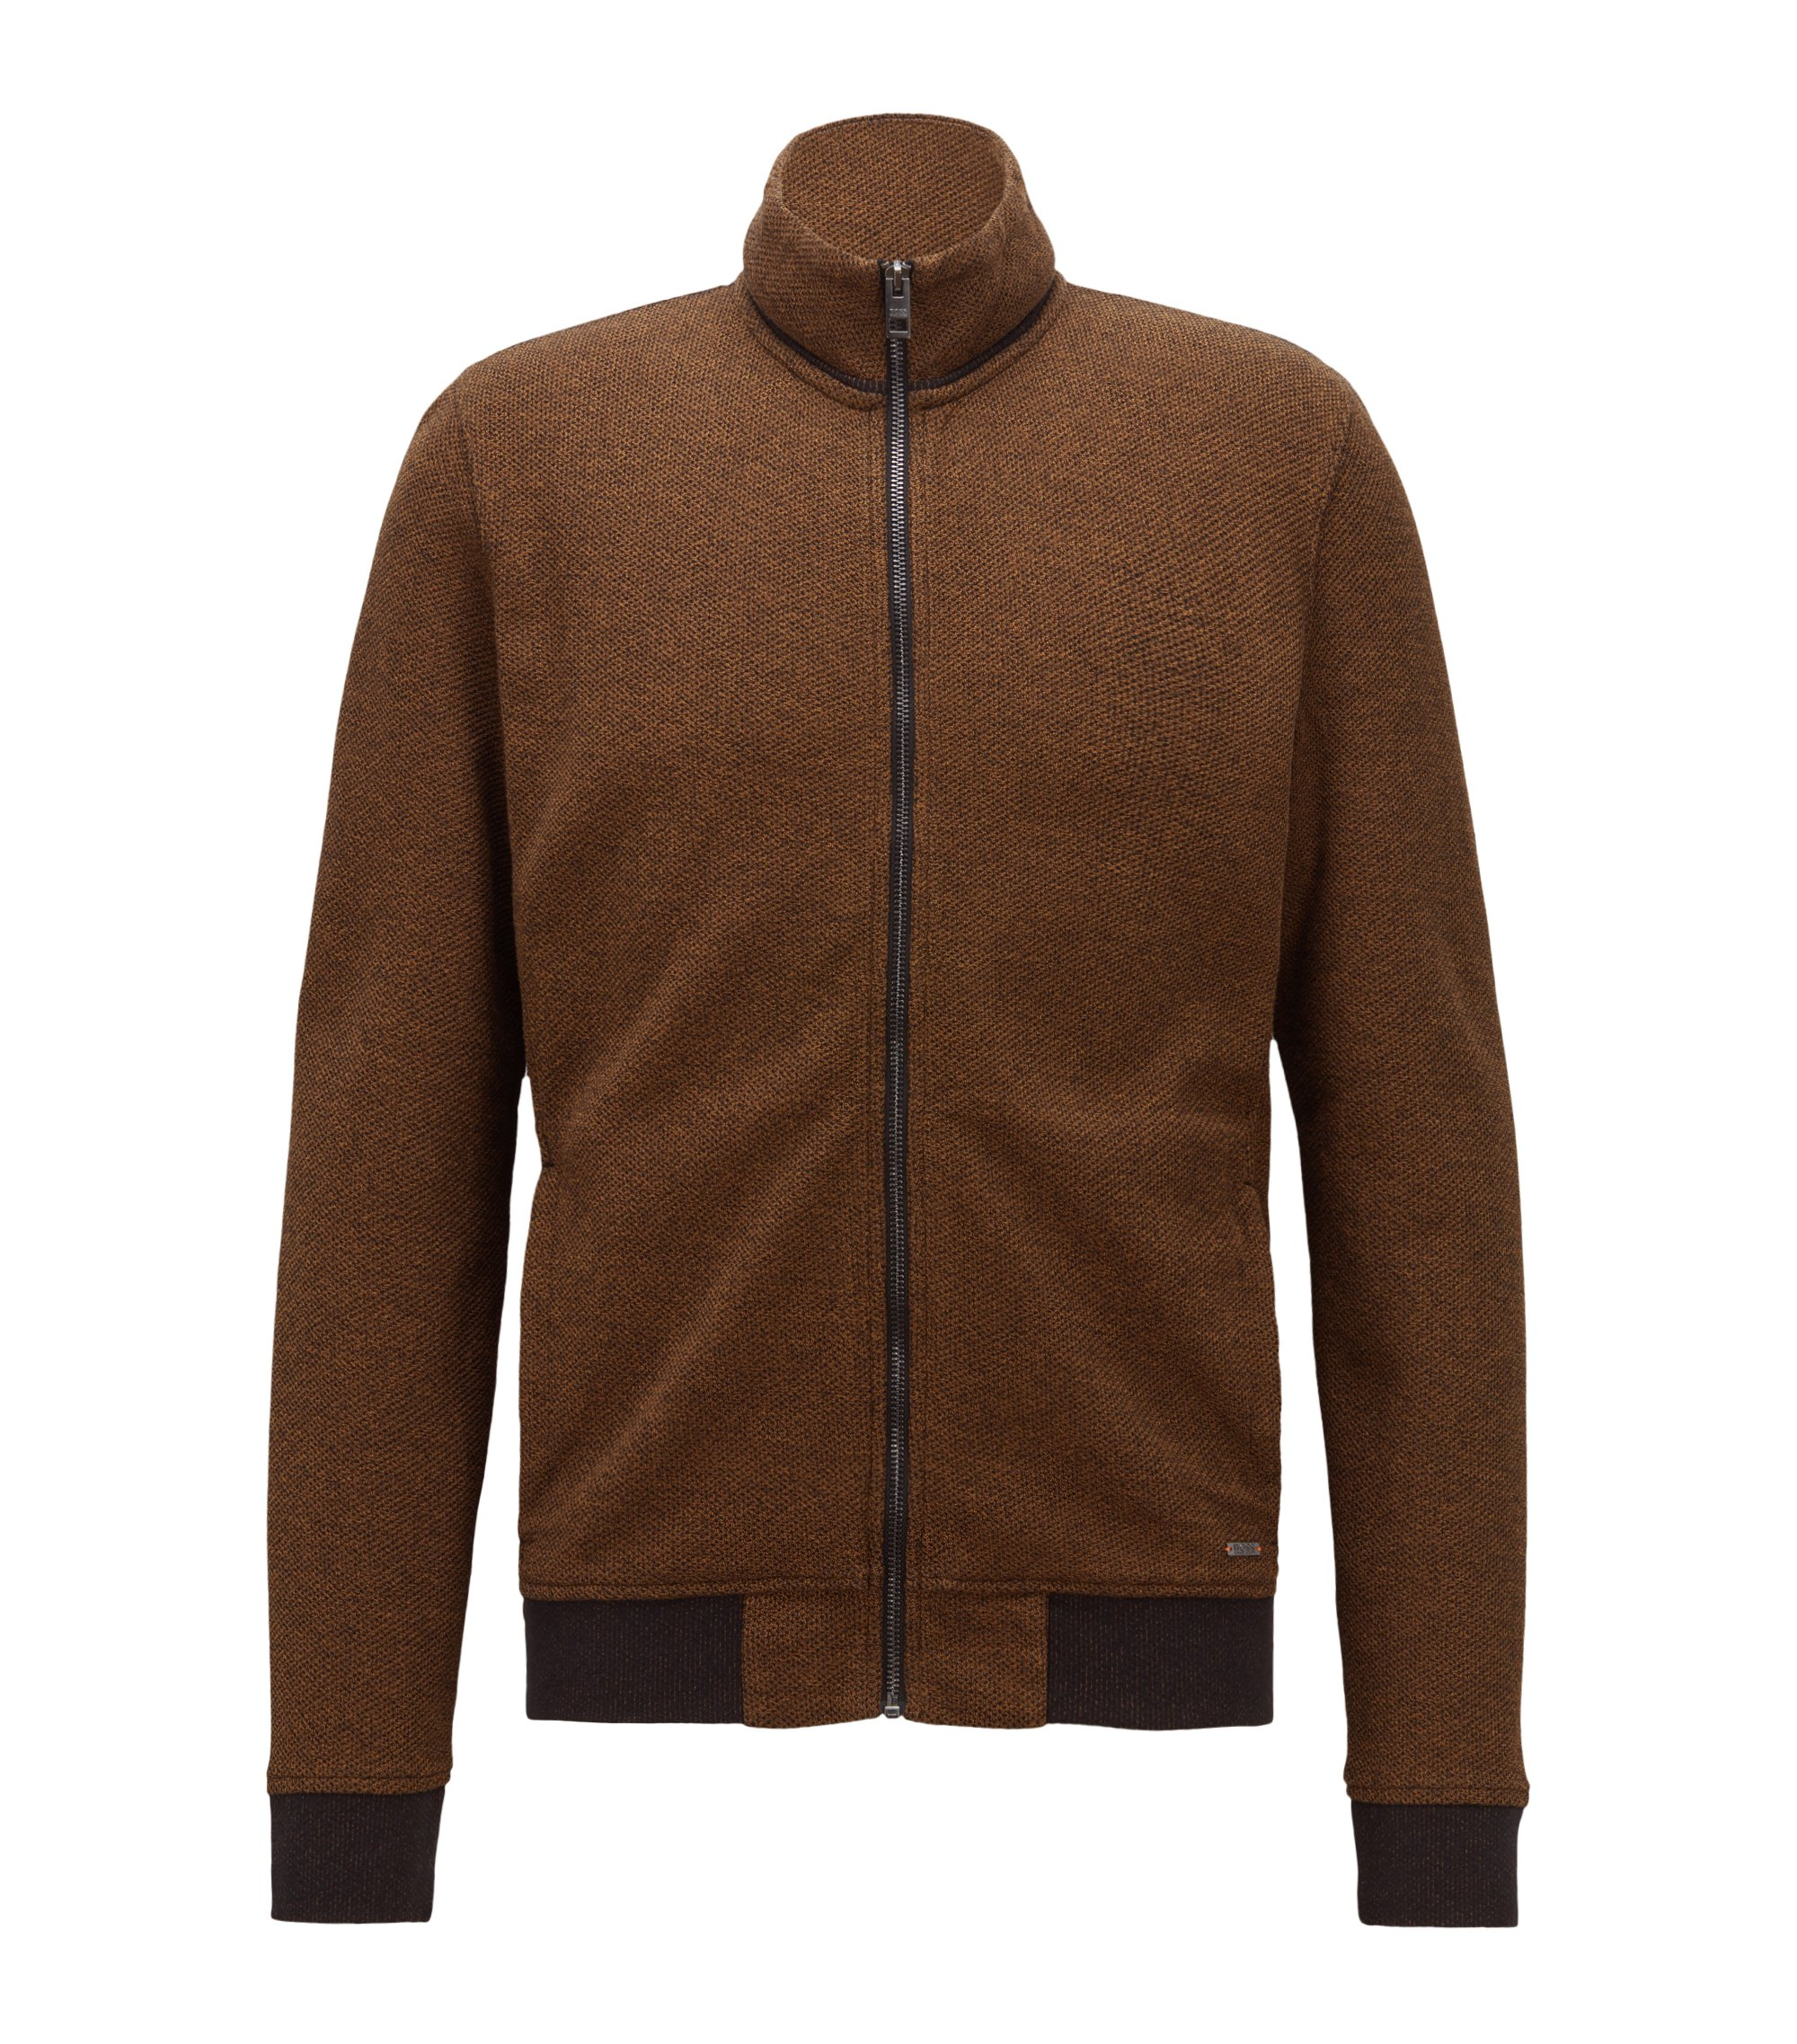 Zip-through jersey jacket with mesh structure, Brown